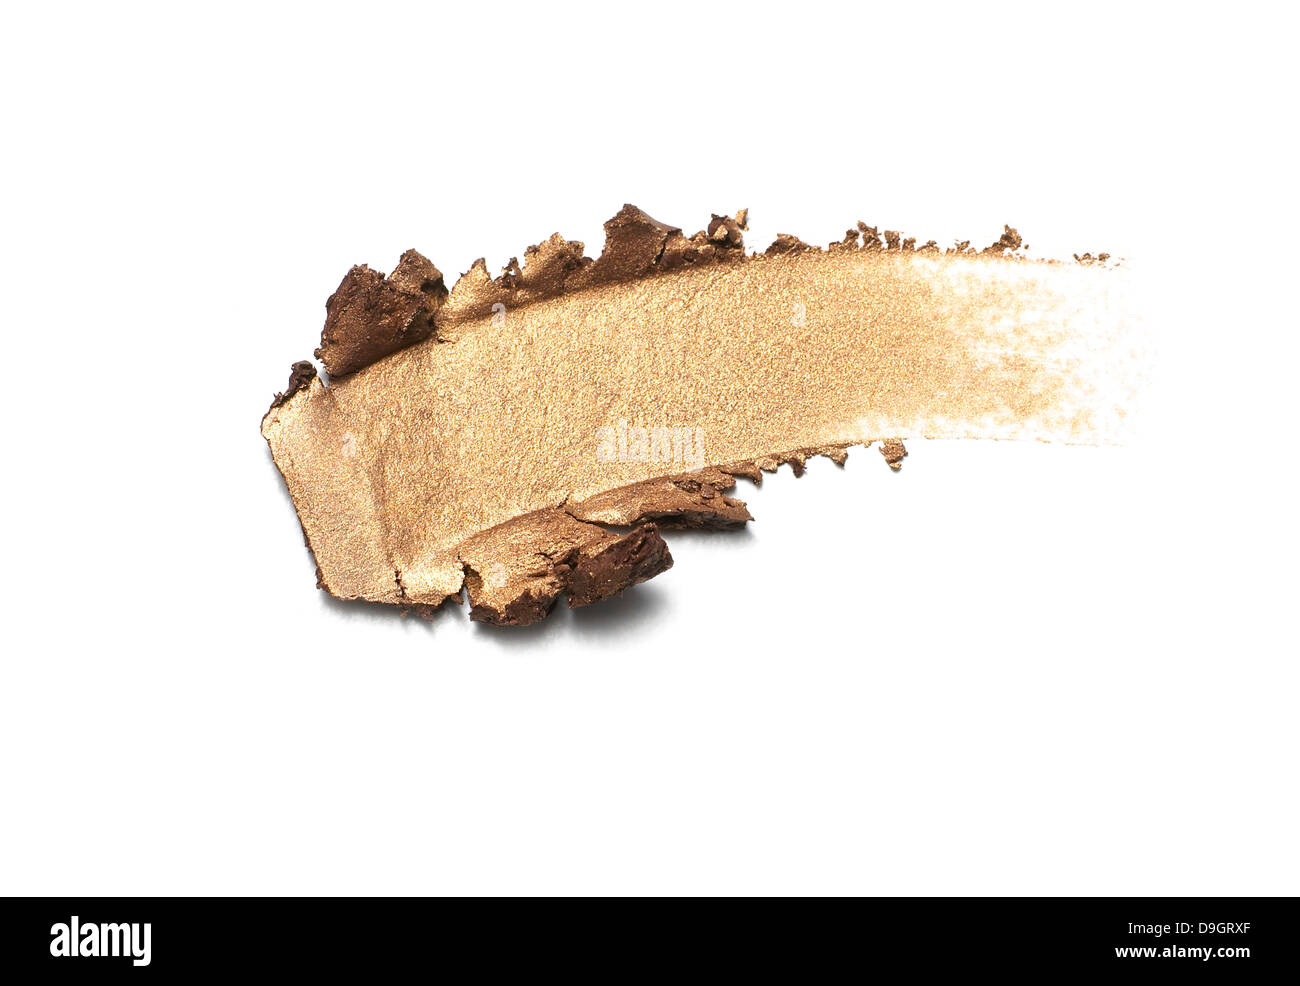 gold shimmer eyeshadow smear cut out onto a white background - Stock Image